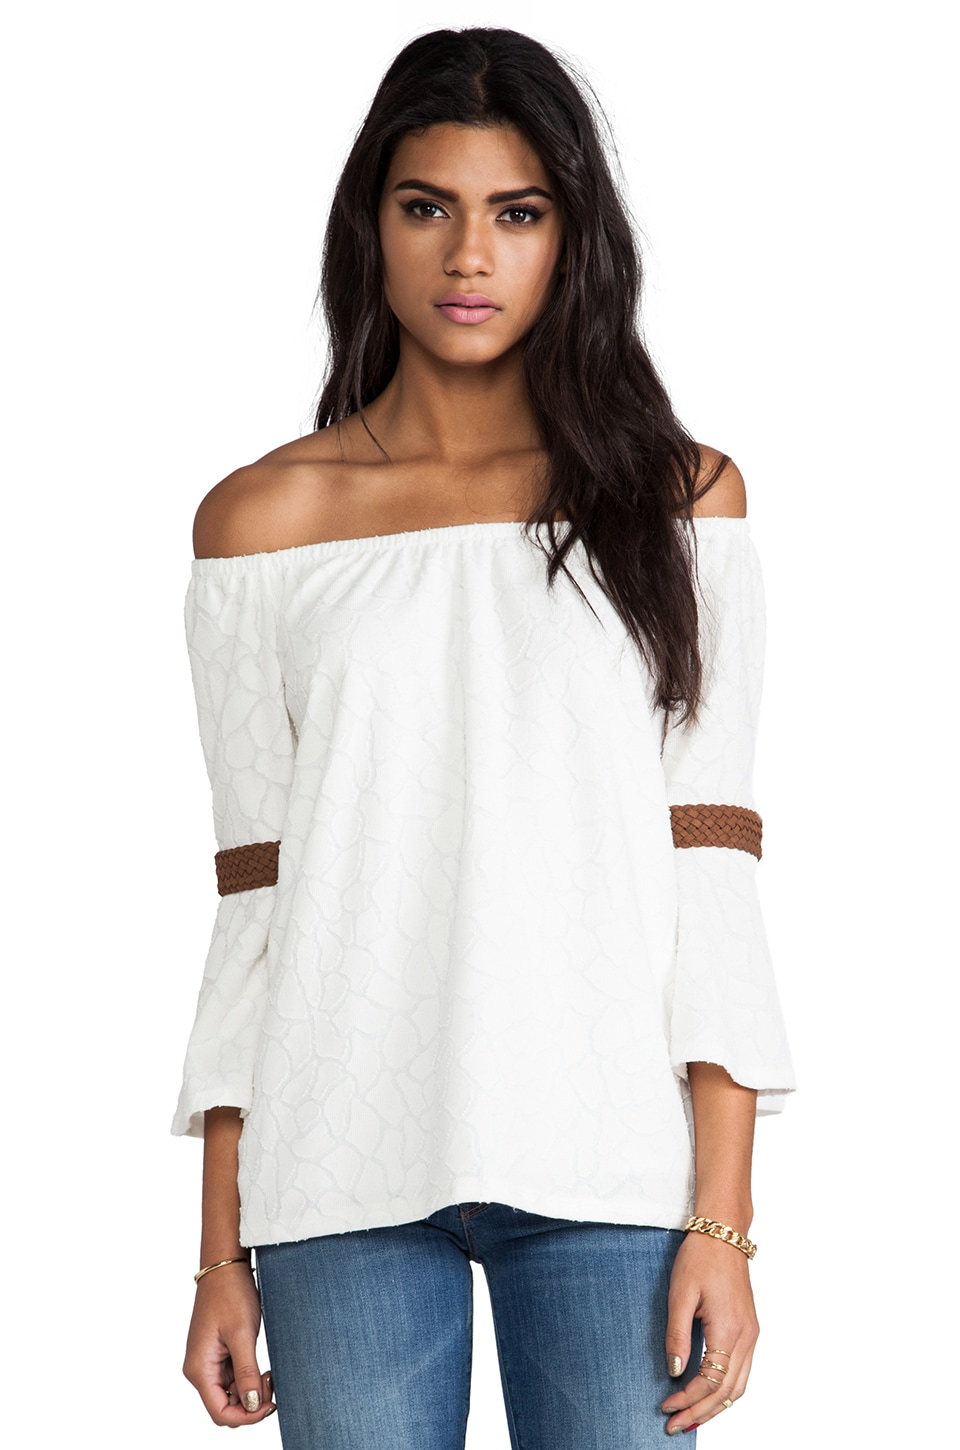 VAVA by Joy Han Wendy Off the Shoulder Top in White